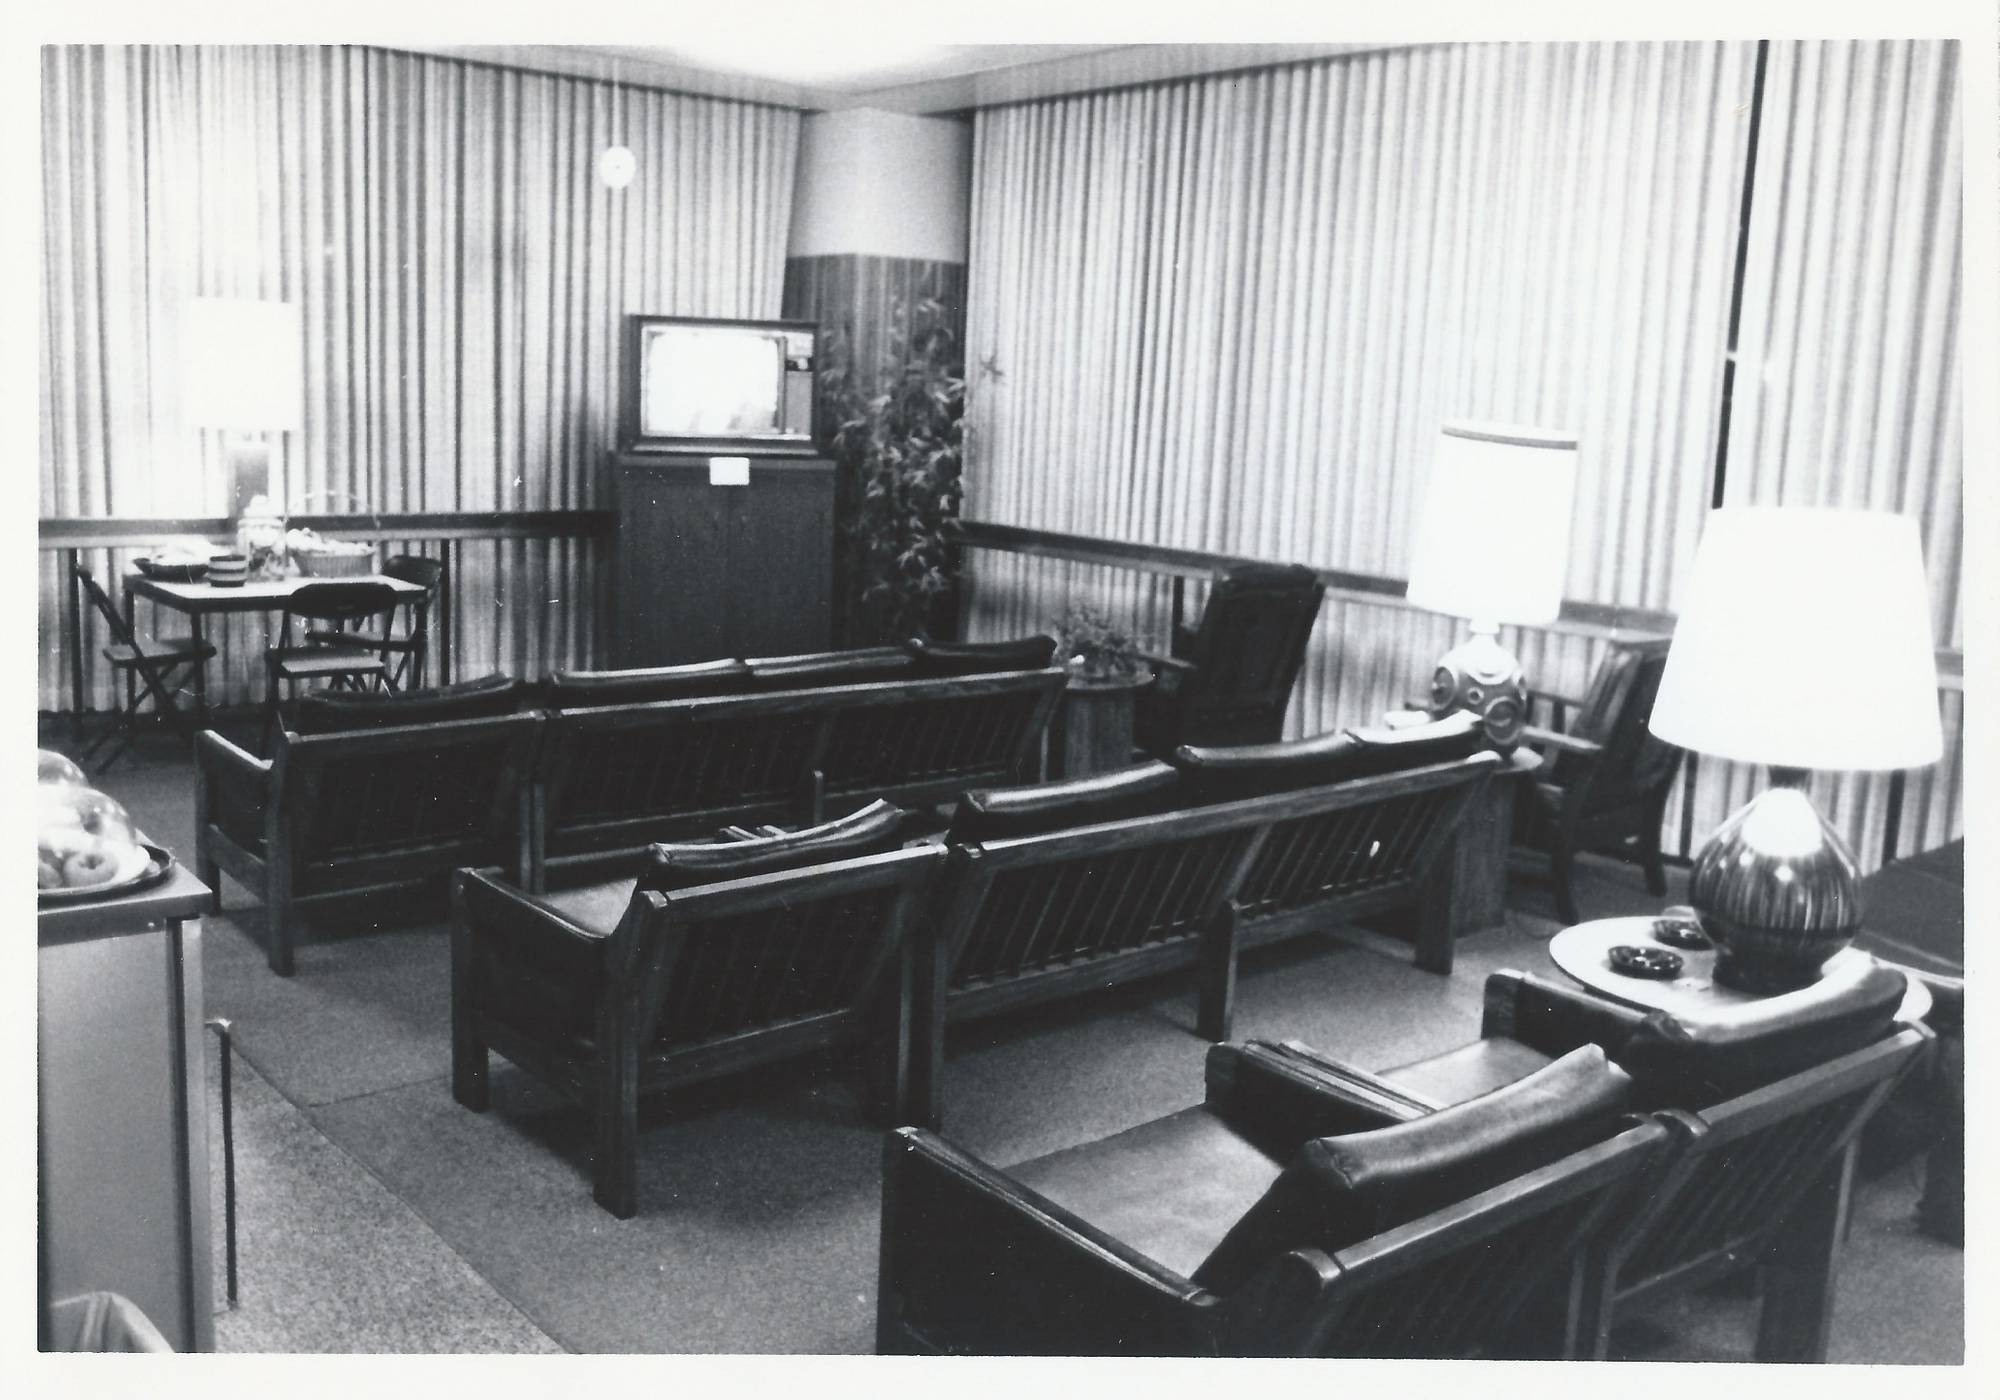 An empty lounge, vertical slat blinds, leather chairs, lamps, plants and a television set.